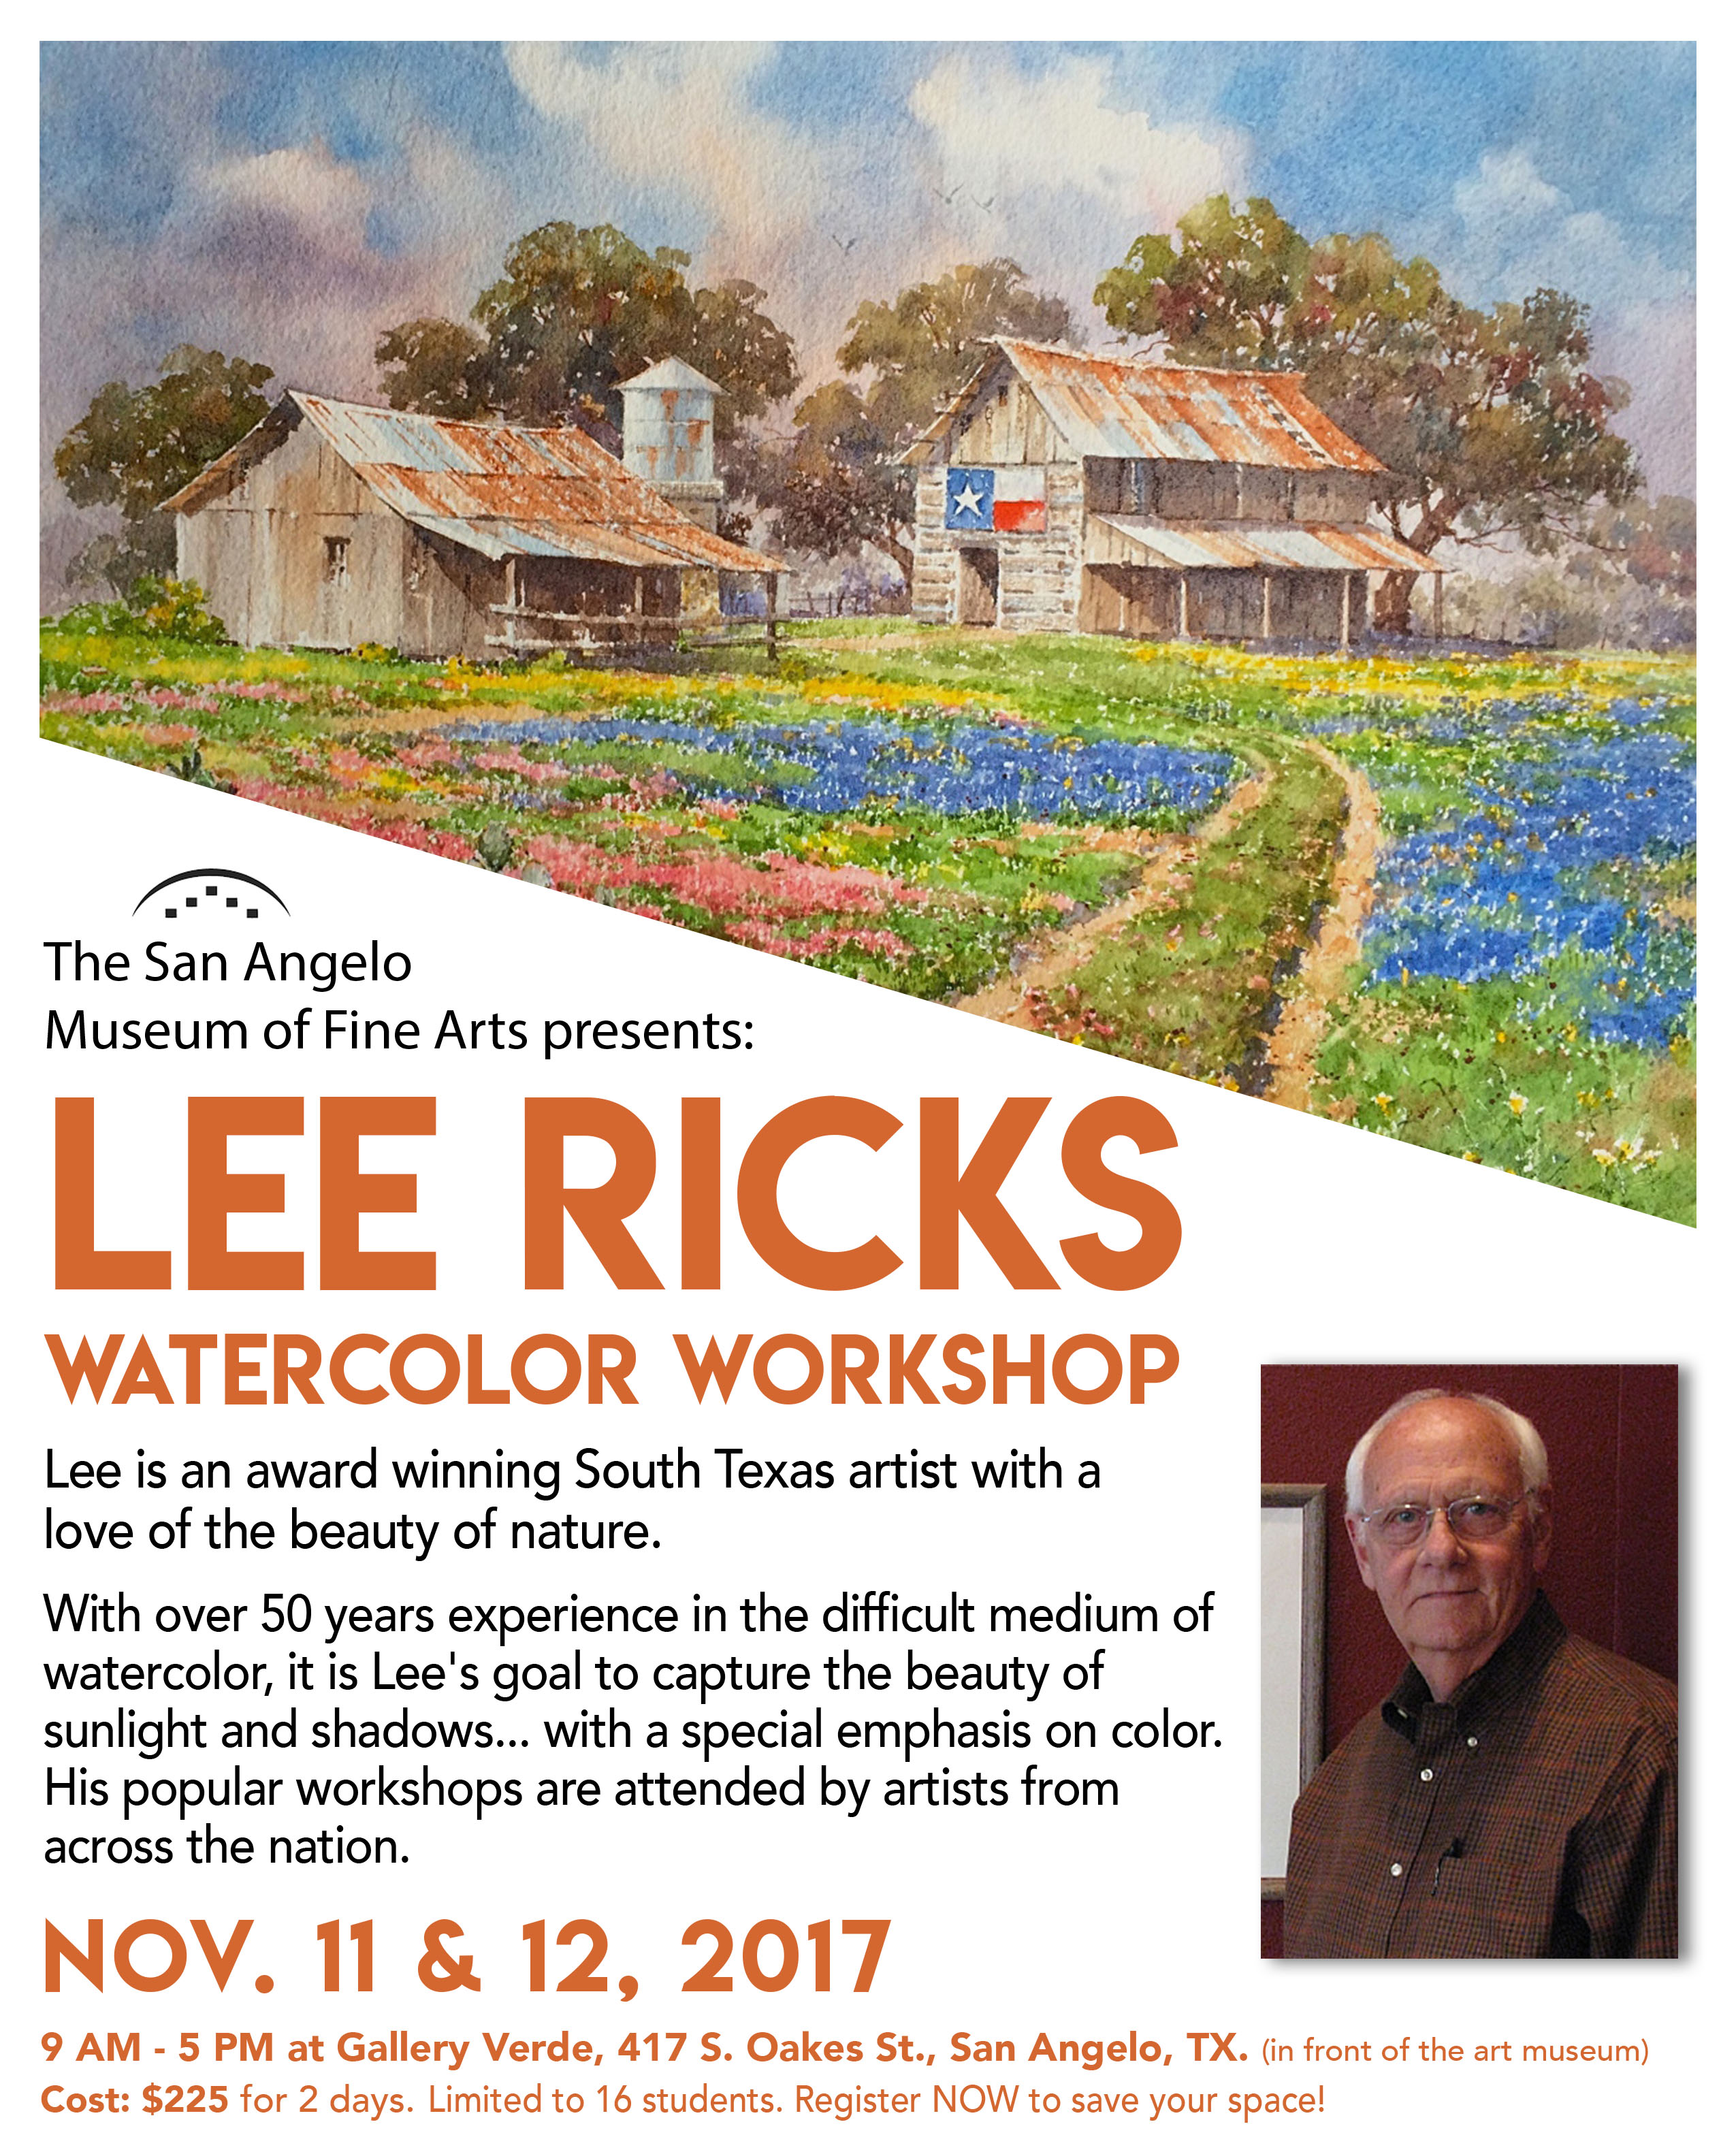 Lee Ricks Watercolor Workshop Flyer